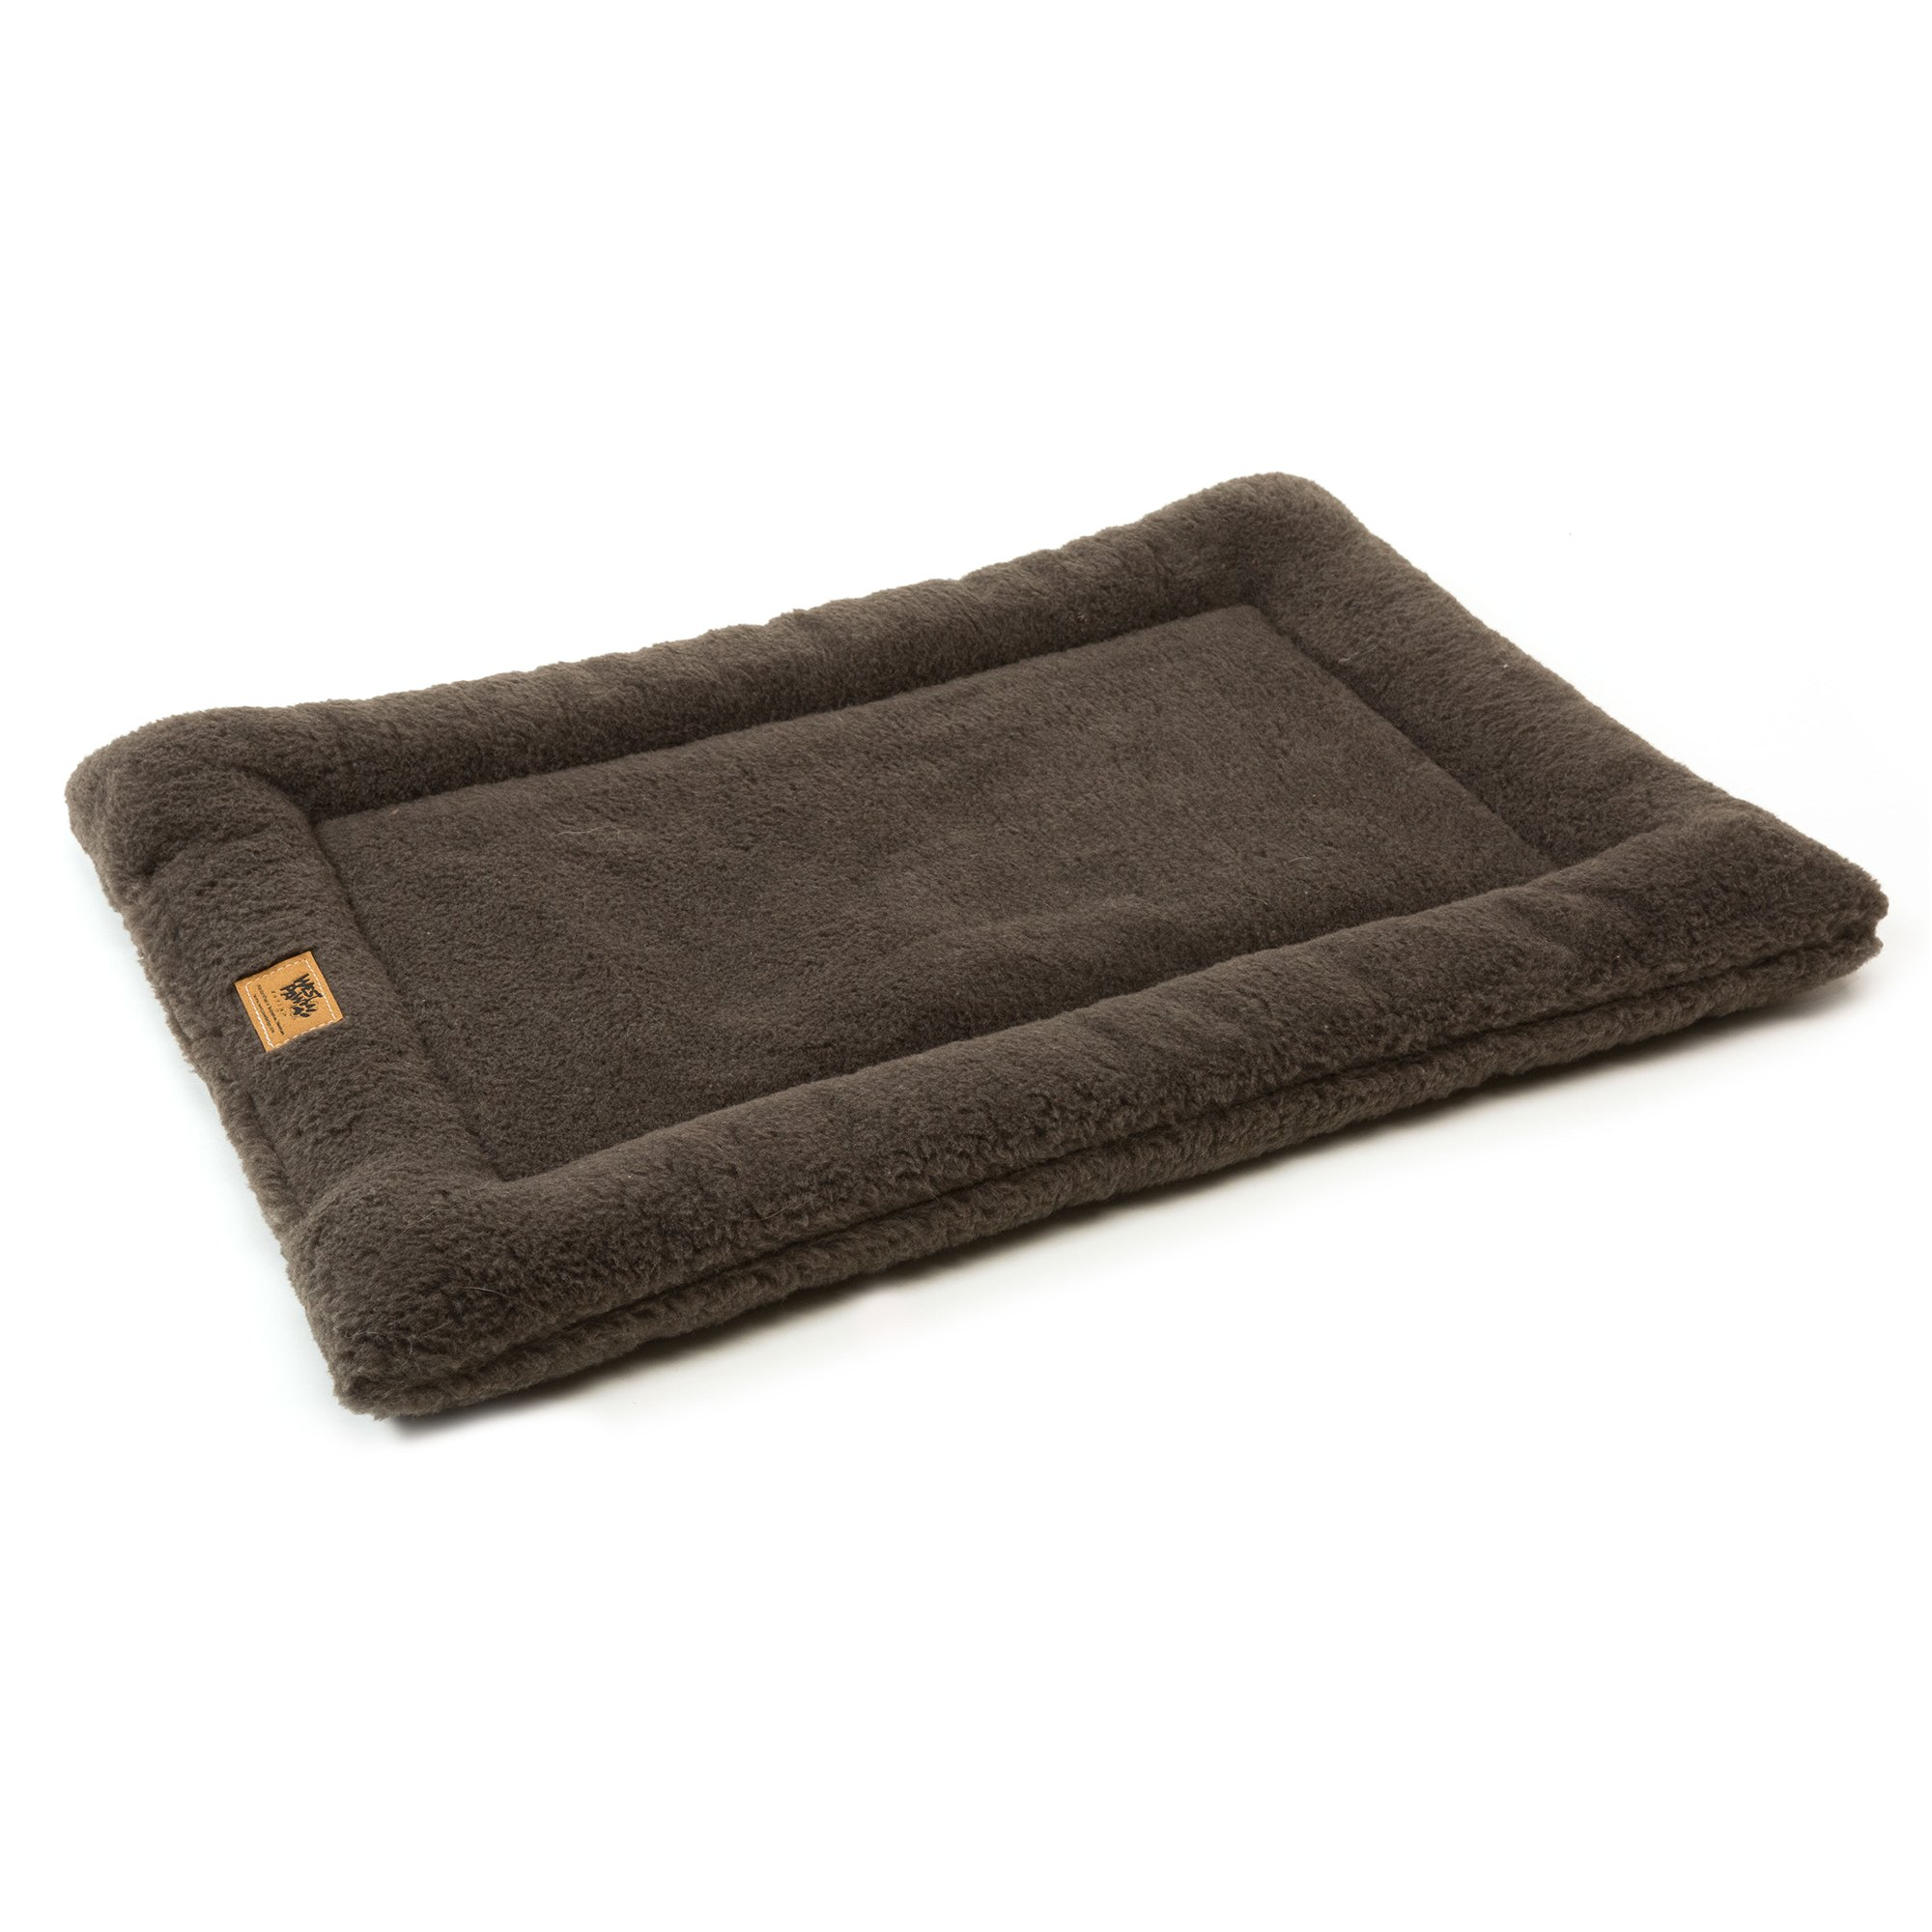 West Paw Design Montana Nap with IntelliLoft Fiber and Fill Durable Lightweight Mat for Dogs and Cats, Made in USA, Boulder, Medium